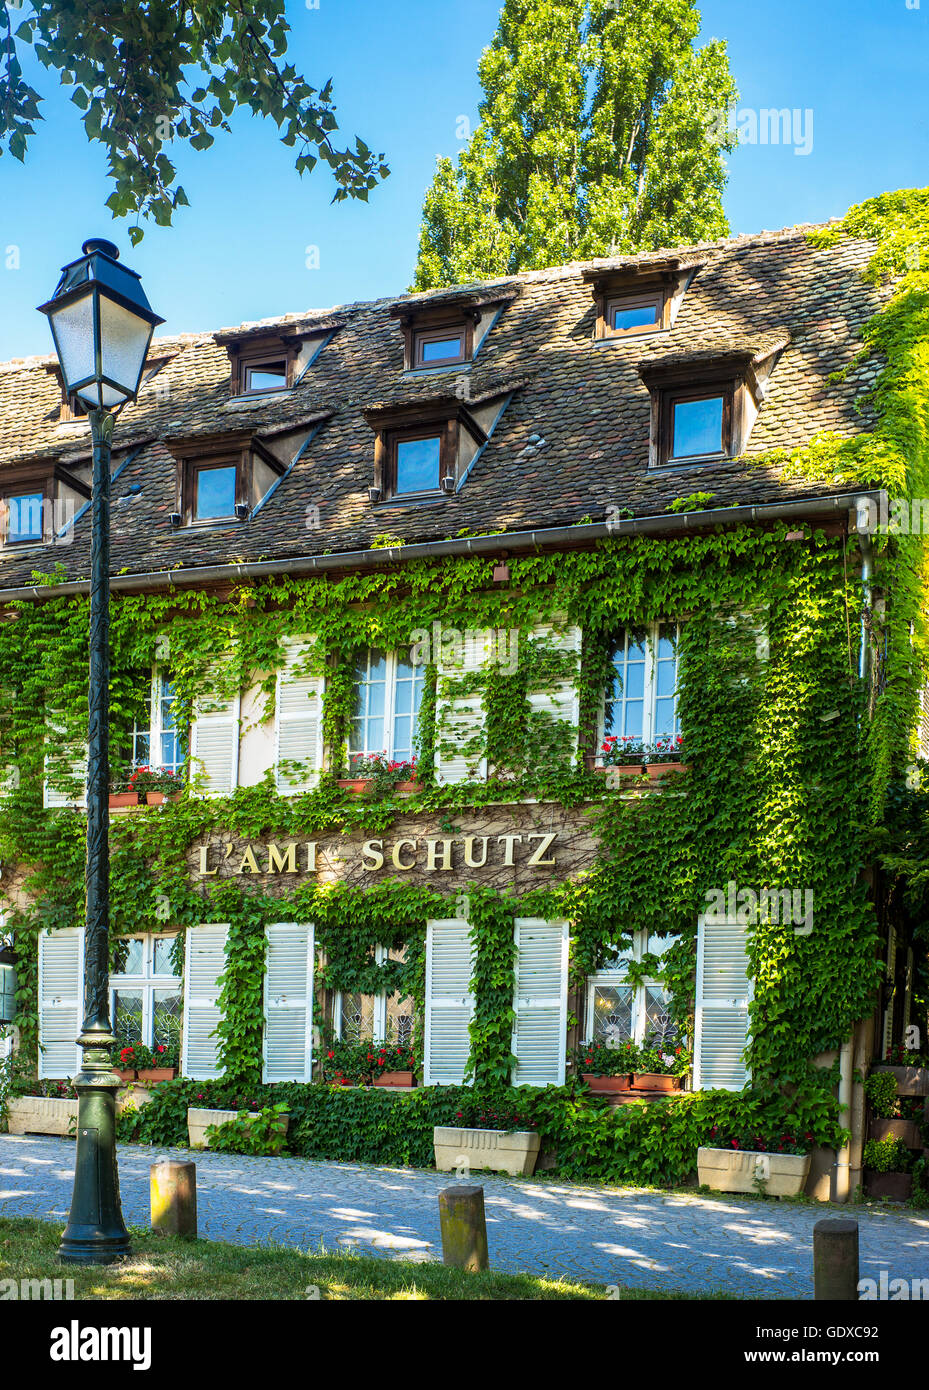 L'Ami Schutz restaurant with ivy covered facade, Strasbourg, Alsace, France, Europe - Stock Image